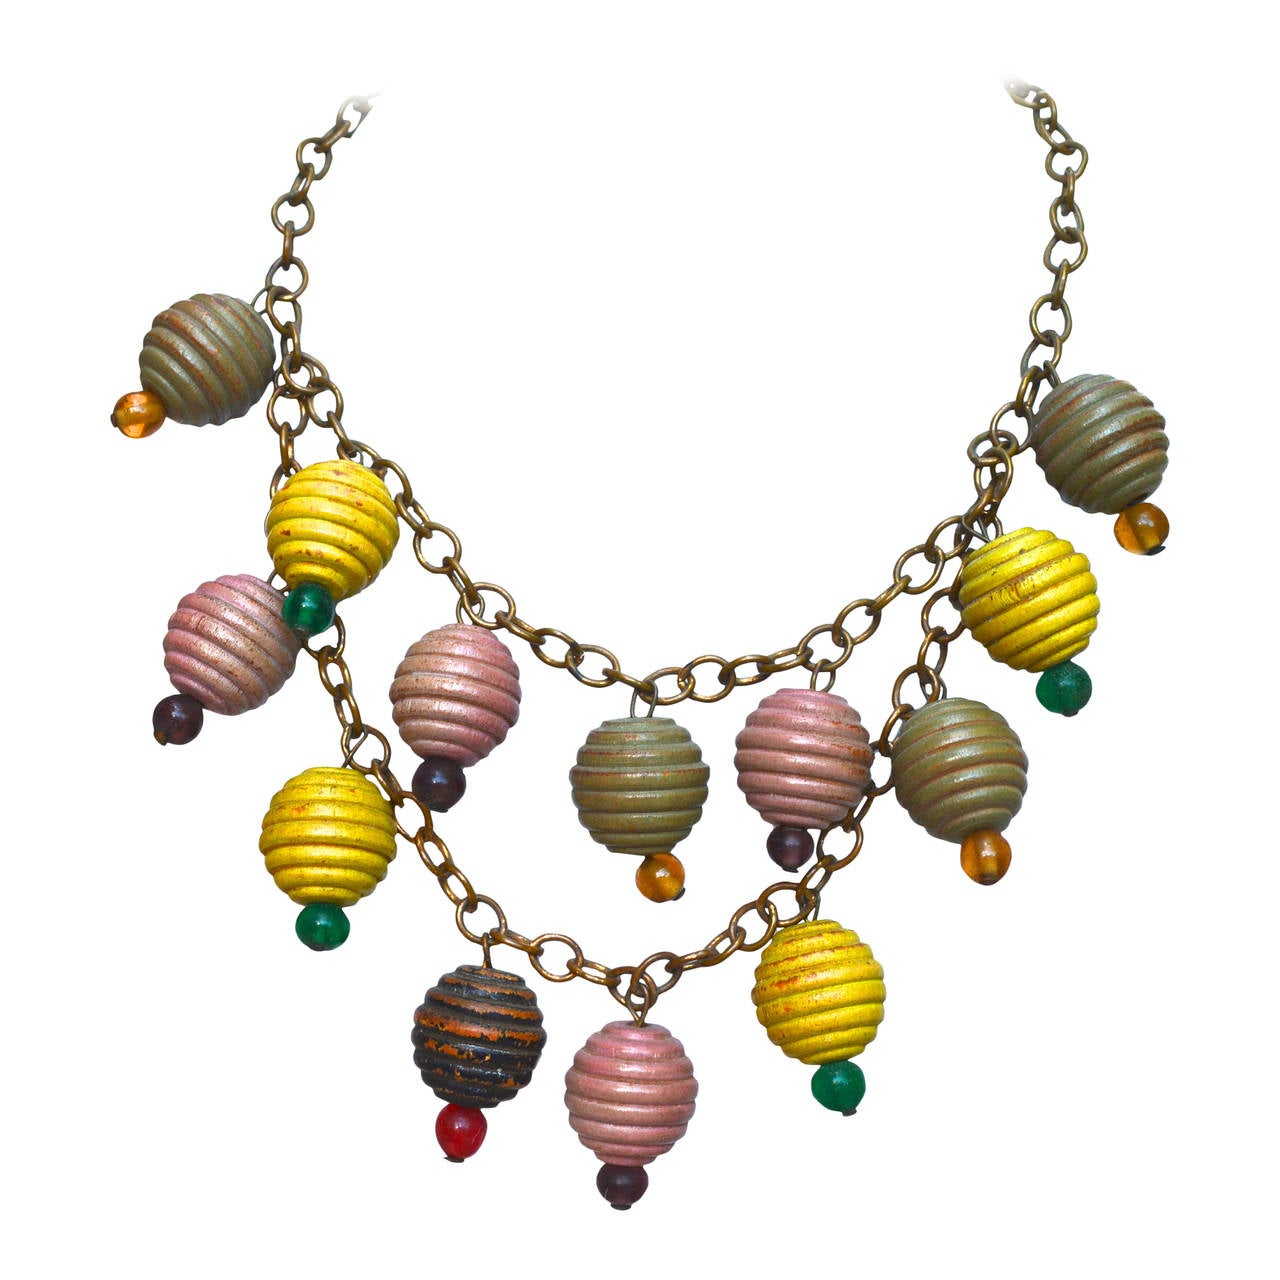 1930s Colorful Wooden Charm Necklace For Sale